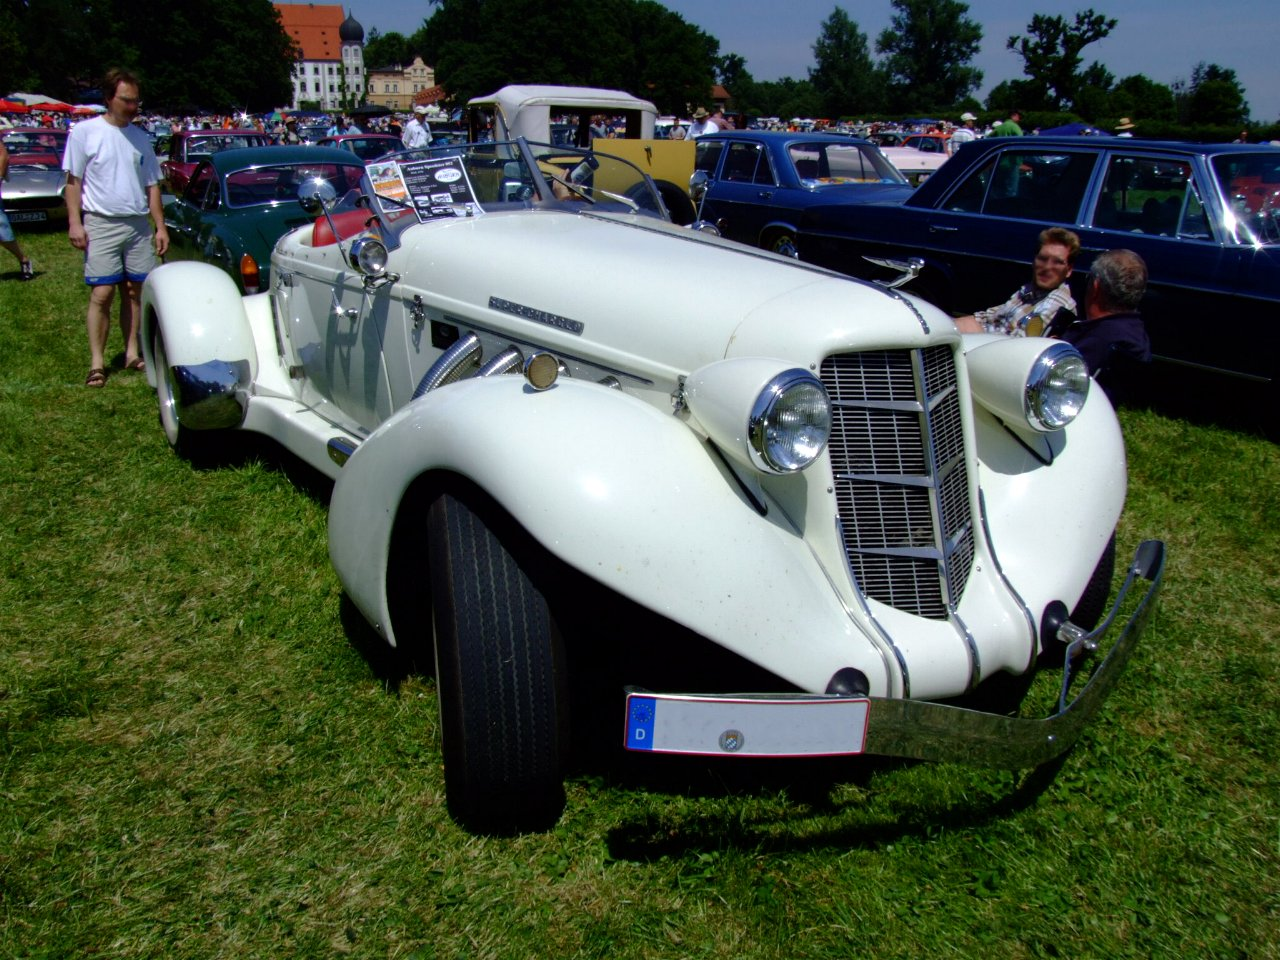 File:Replica of Auburn 852 Speedster 1.jpg